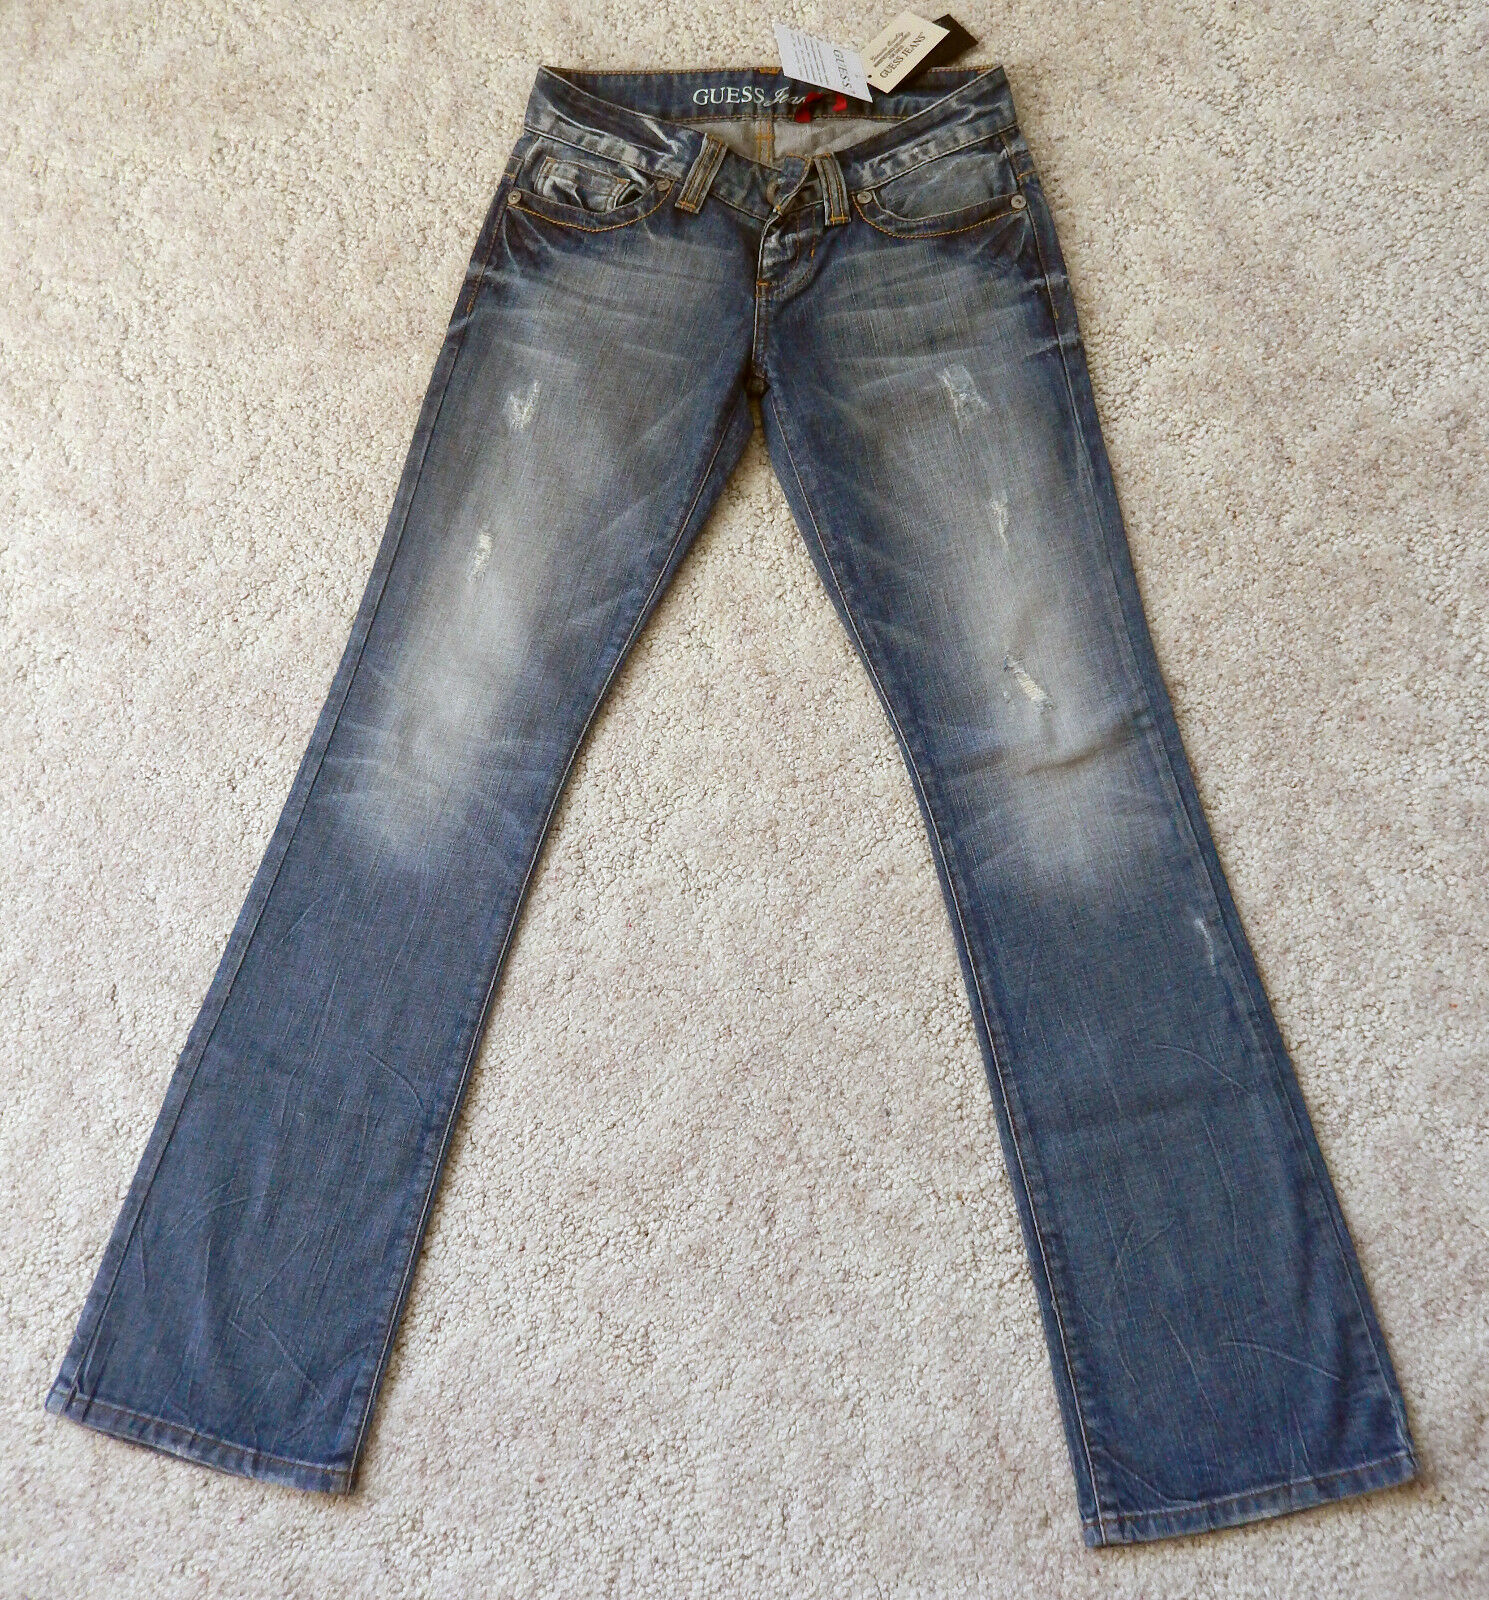 GUESS Denim Pants bluee Distressed Jeans Guess Los Angeles Bootcut 26 NWT